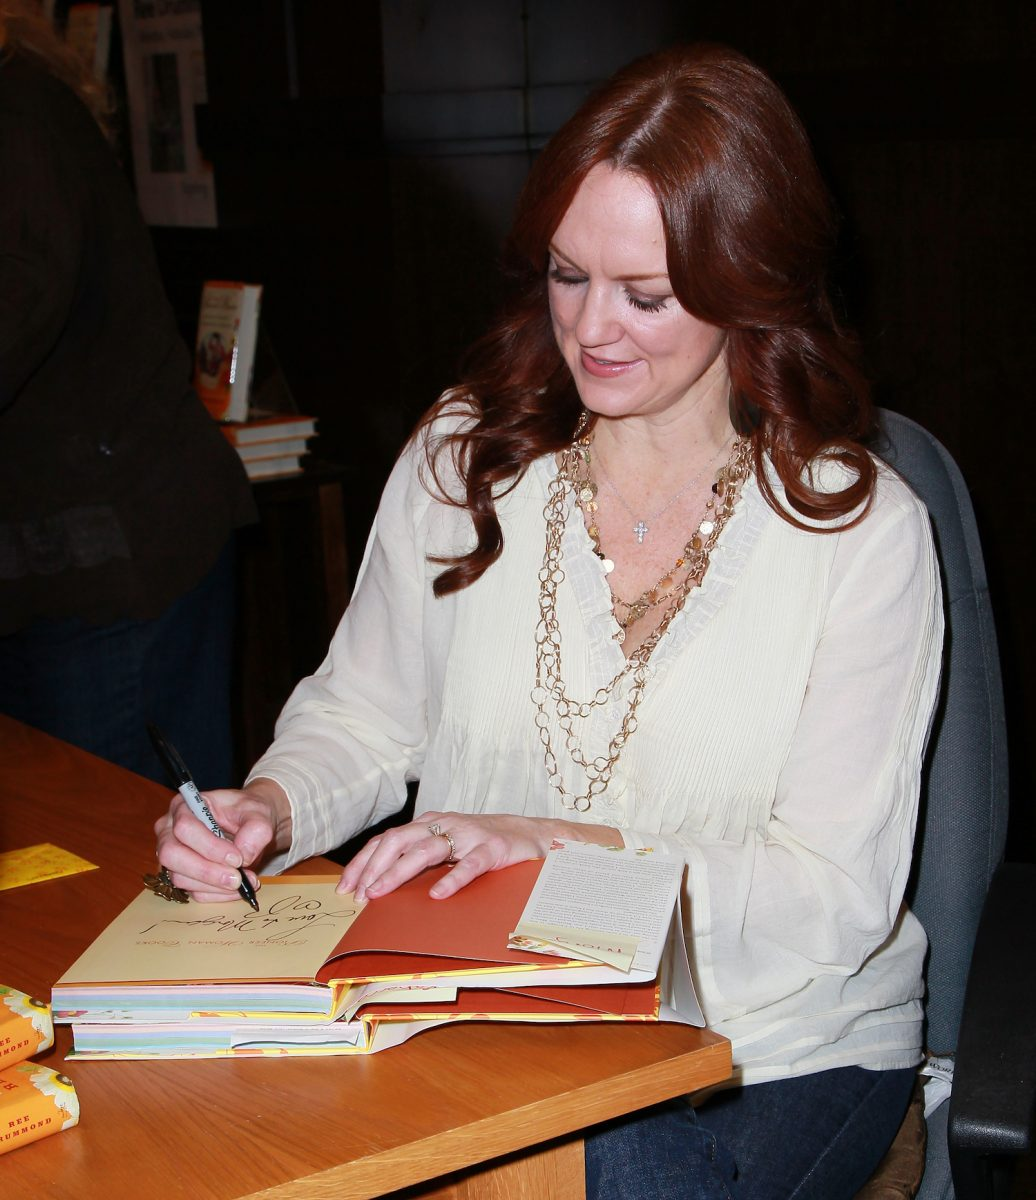 Ree Drummond signing a book in 2011